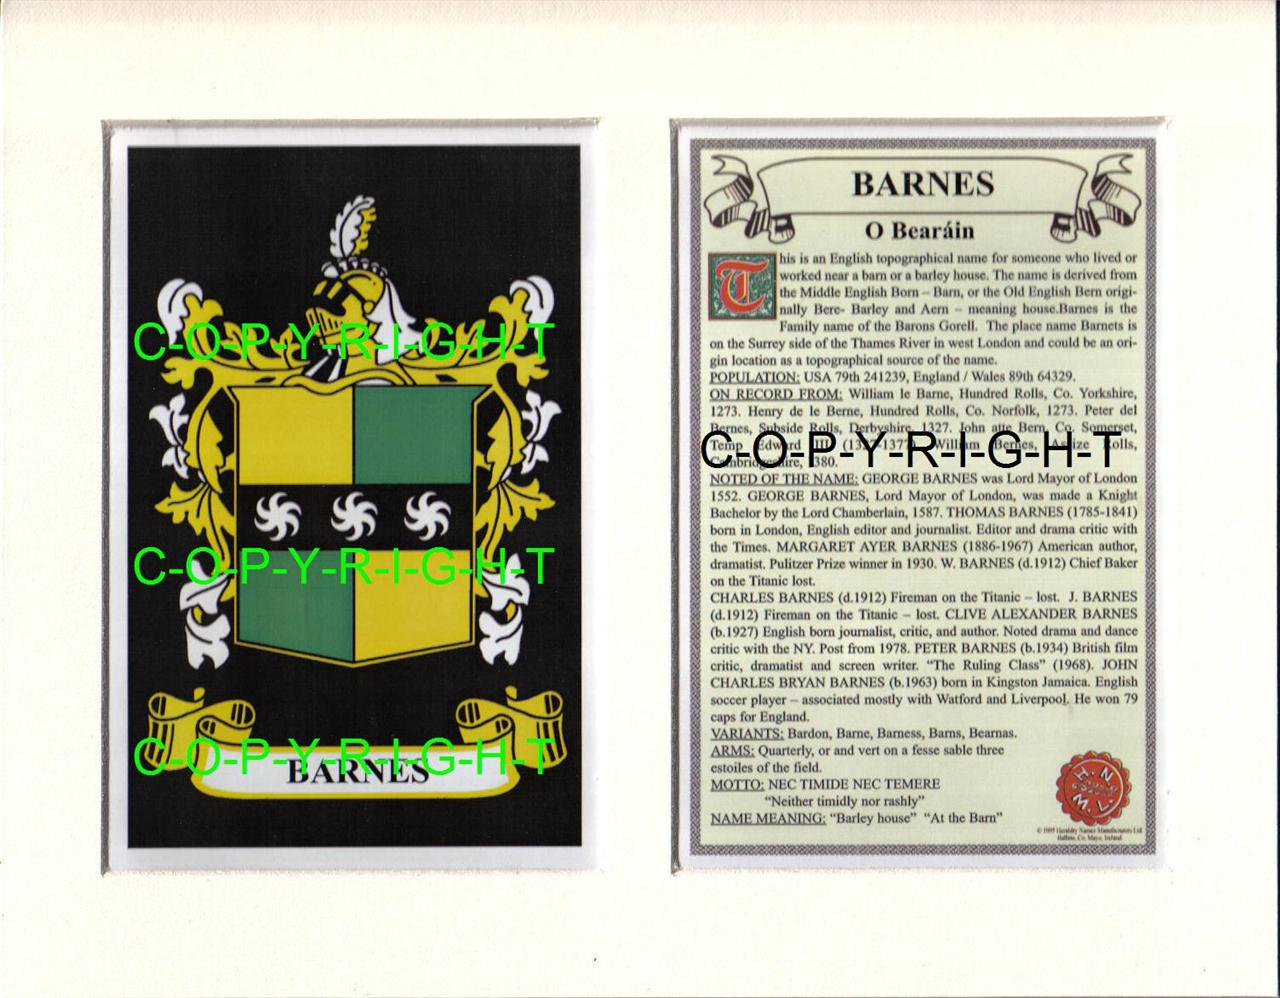 BARNES-Family-Coat-of-Arms-Crest-History-Available-Mounted-or-Framed